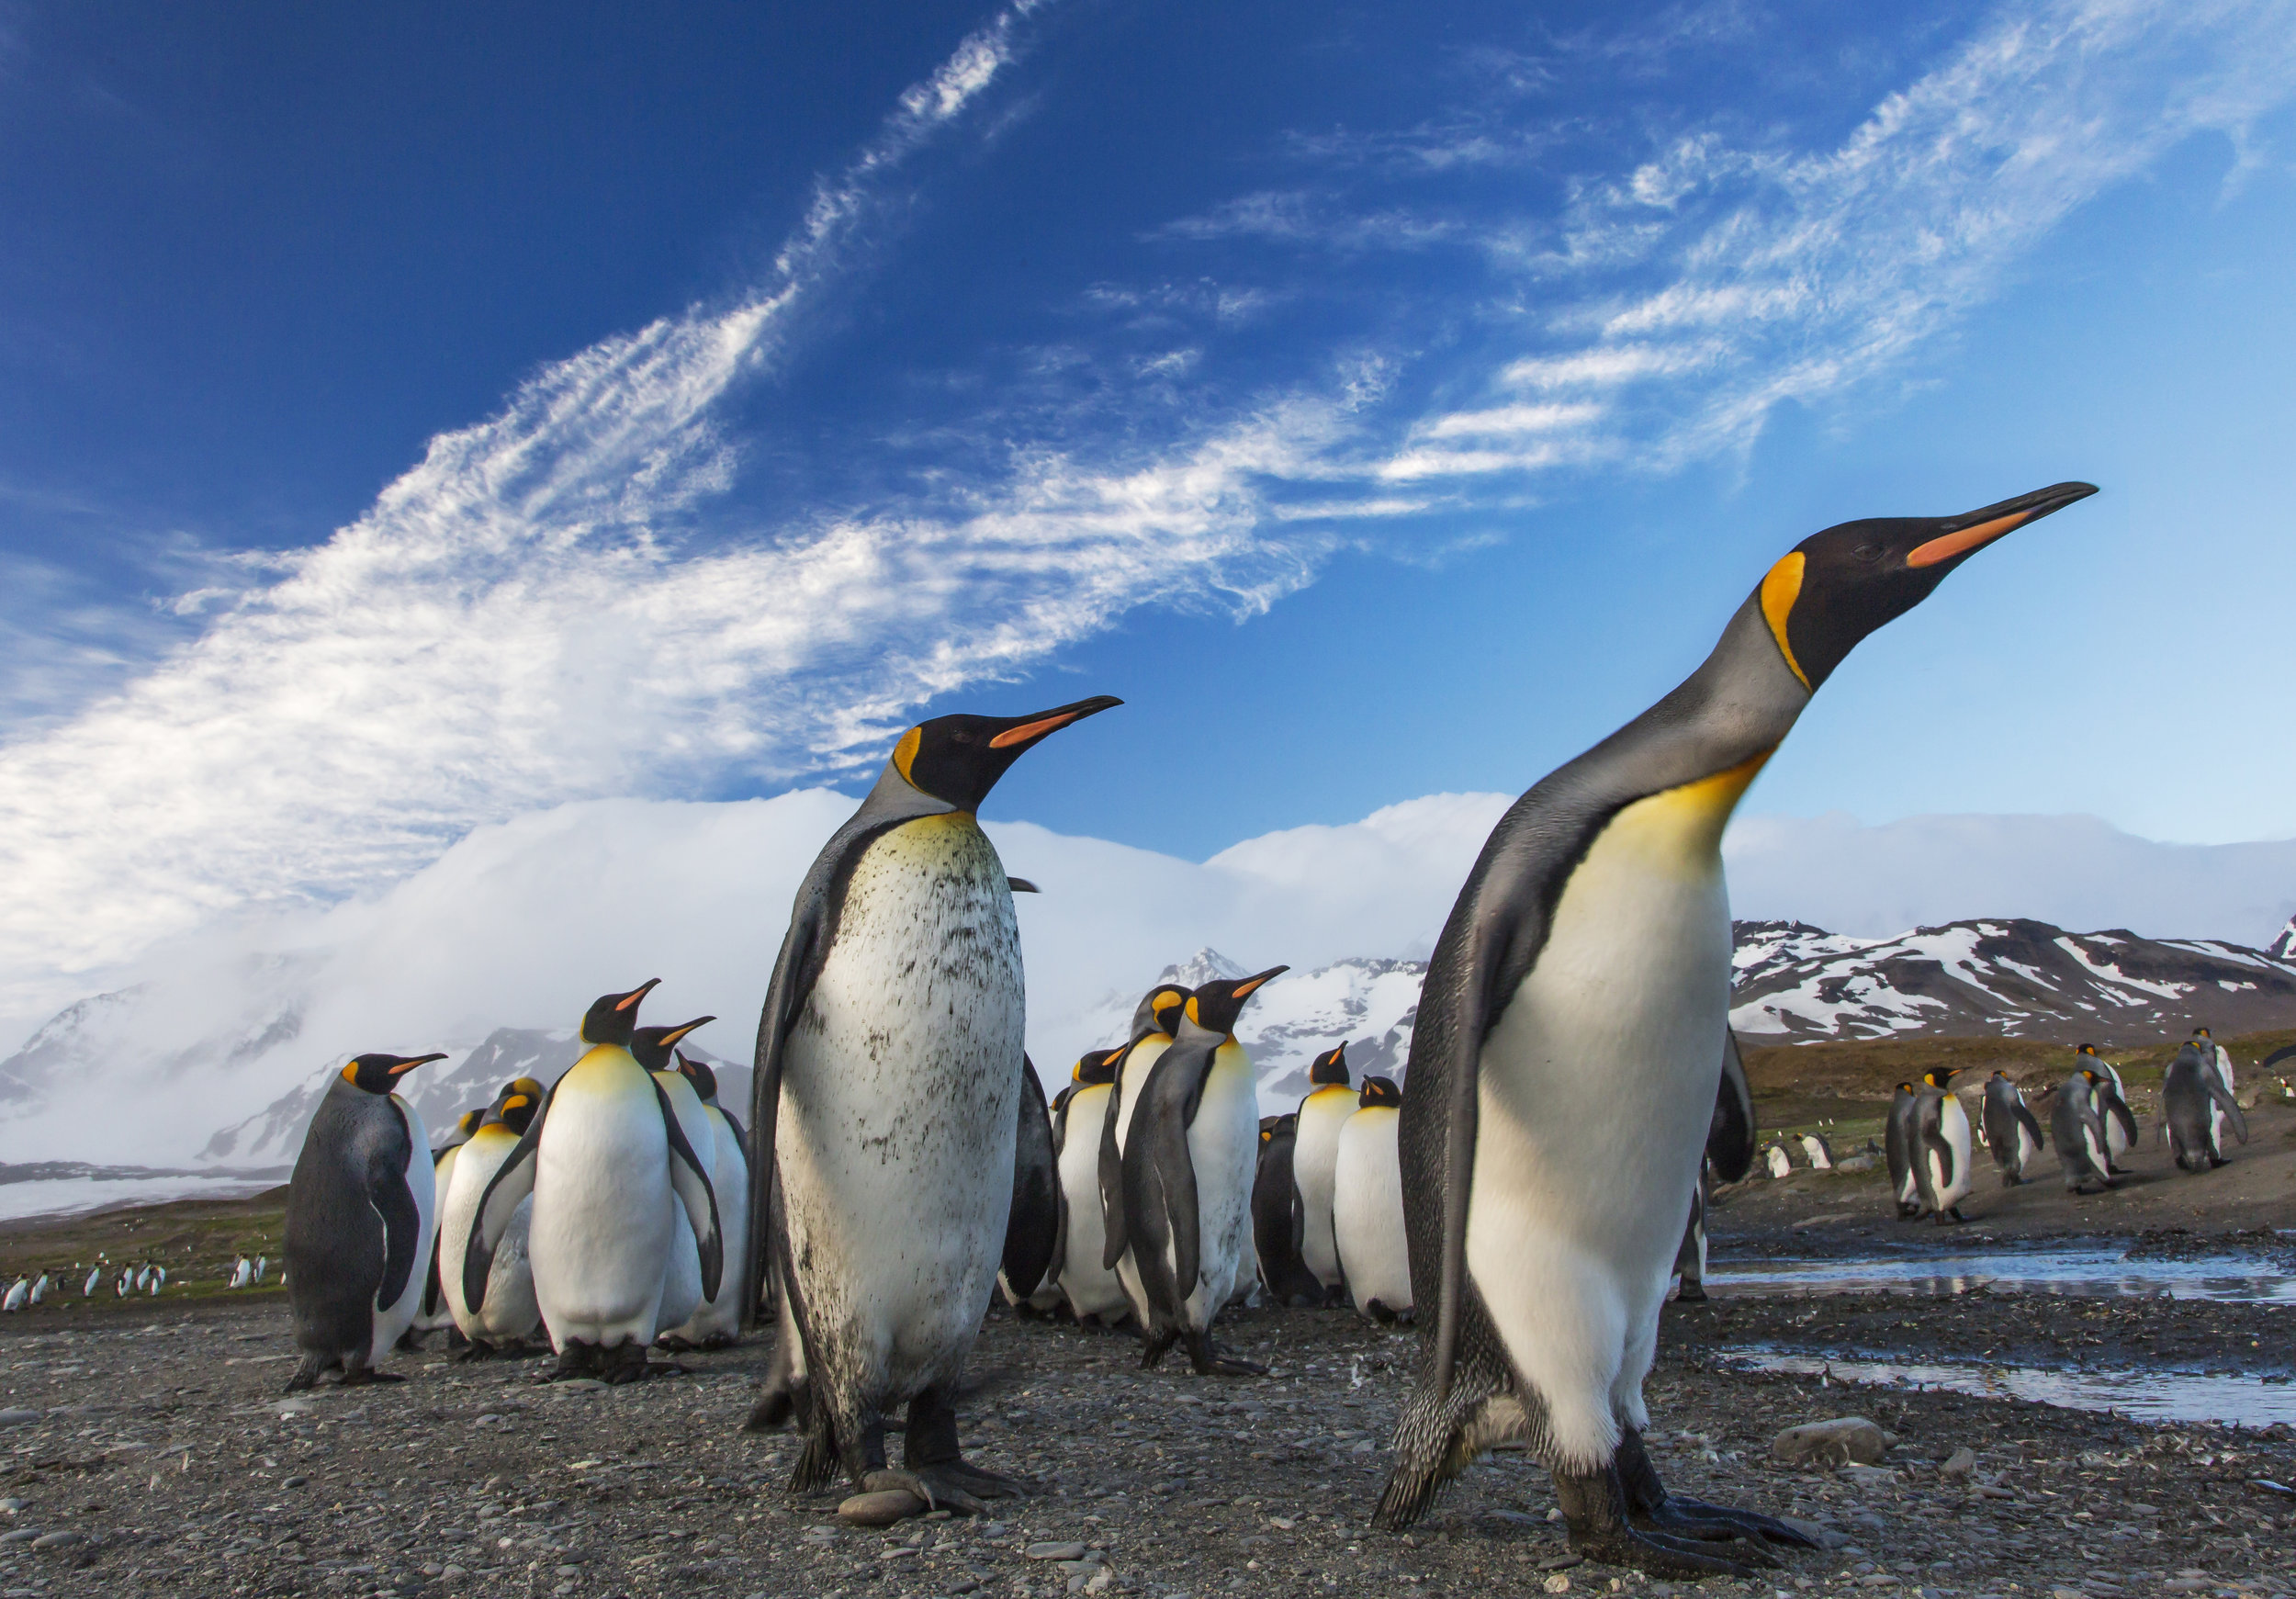 Discover Antarctica - 11 days from $7,460*pp (NZD)Sale ends: 31 Dec 2020Travel Period: 4 Nov 2020 - 24 Feb 2021